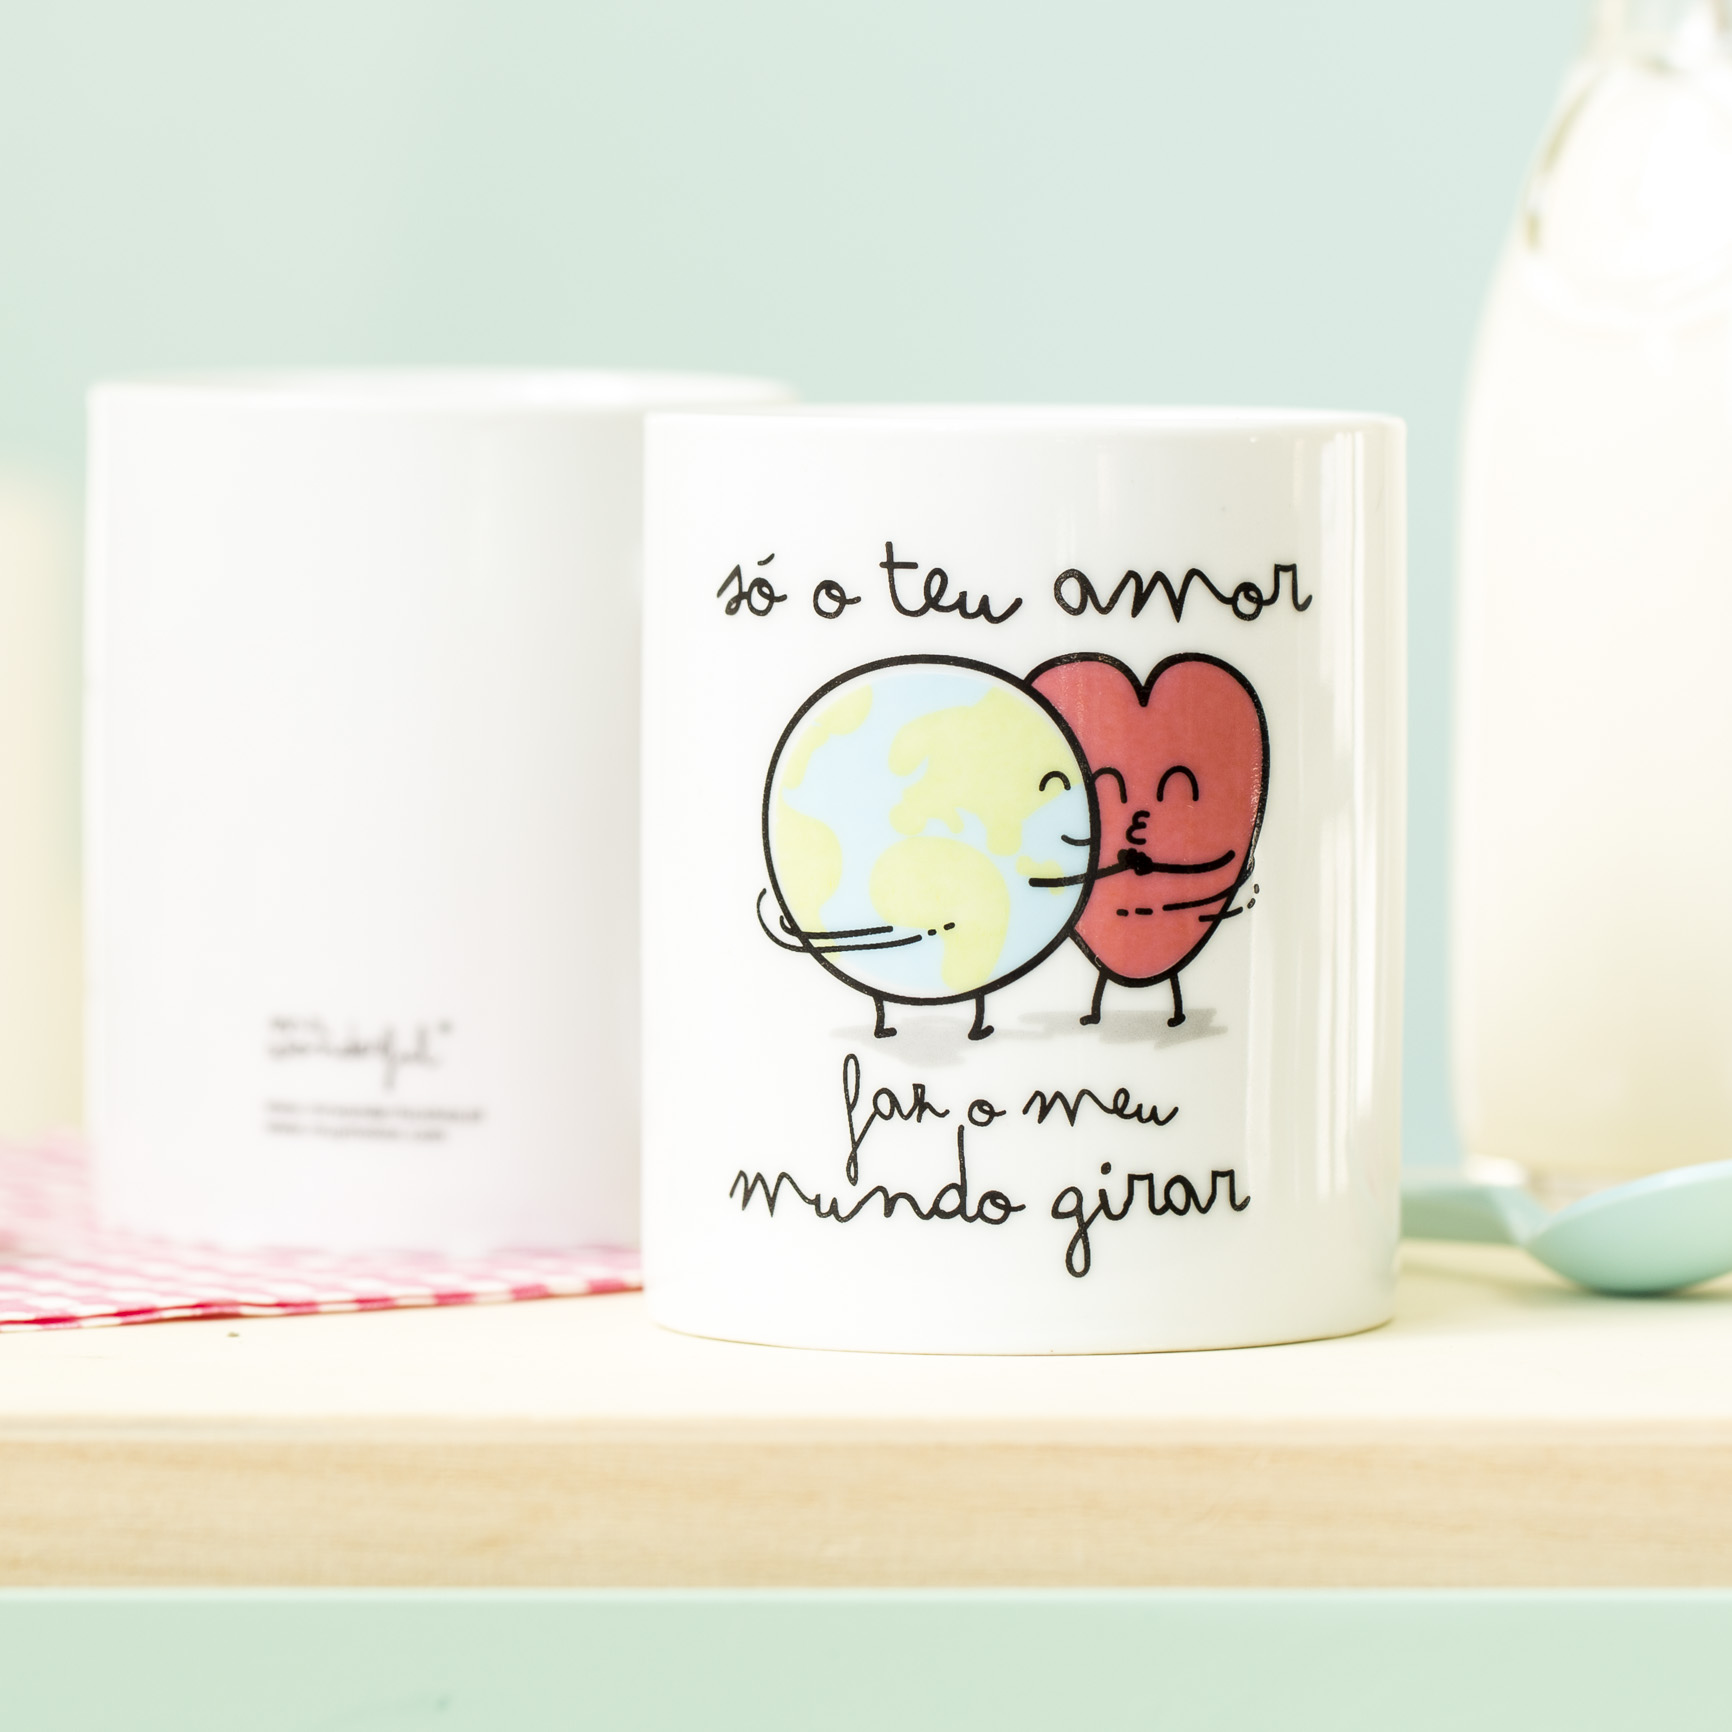 mrwonderful_Won102_so-amor-far-meu-mundo-girar-28